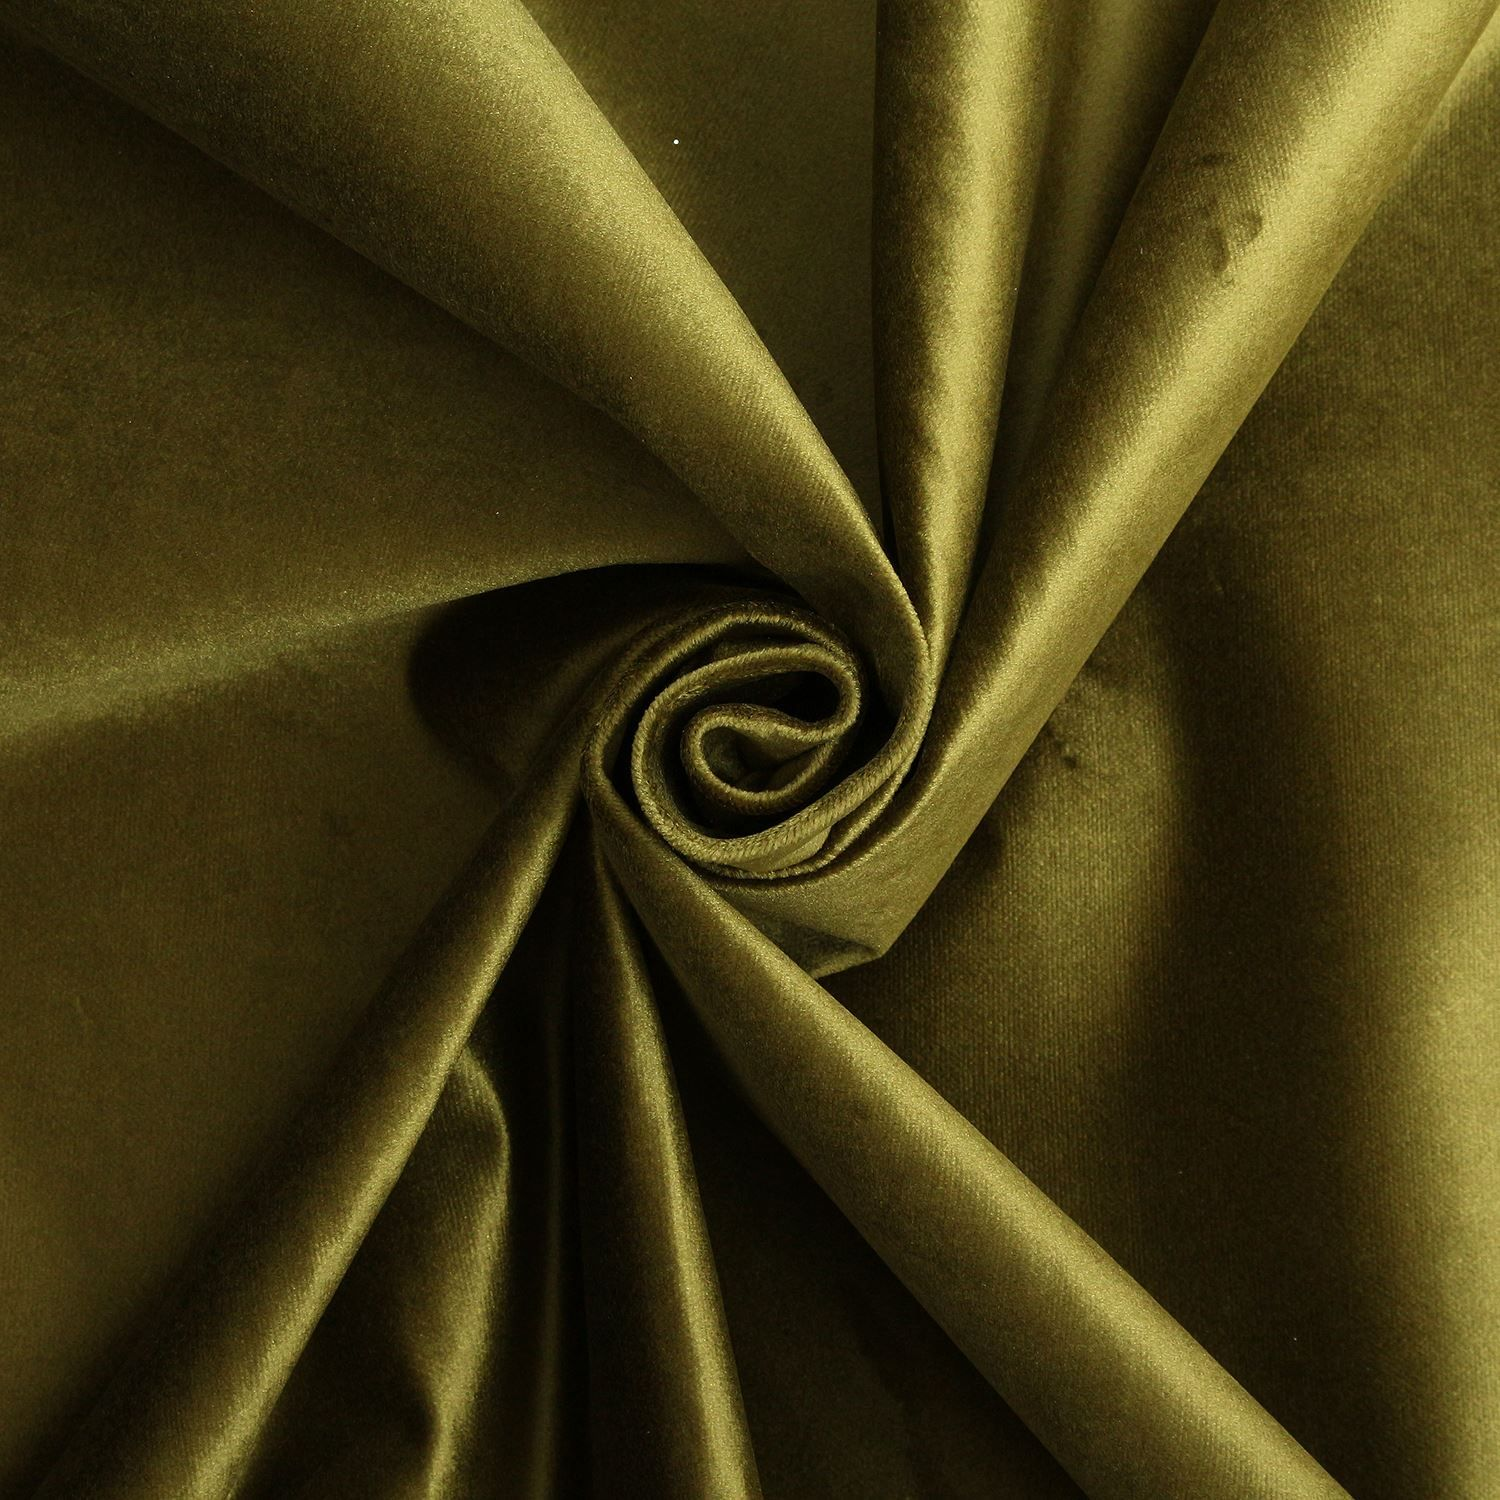 Details About Luxury Velvet Shiny Designer Smooth Thick Material